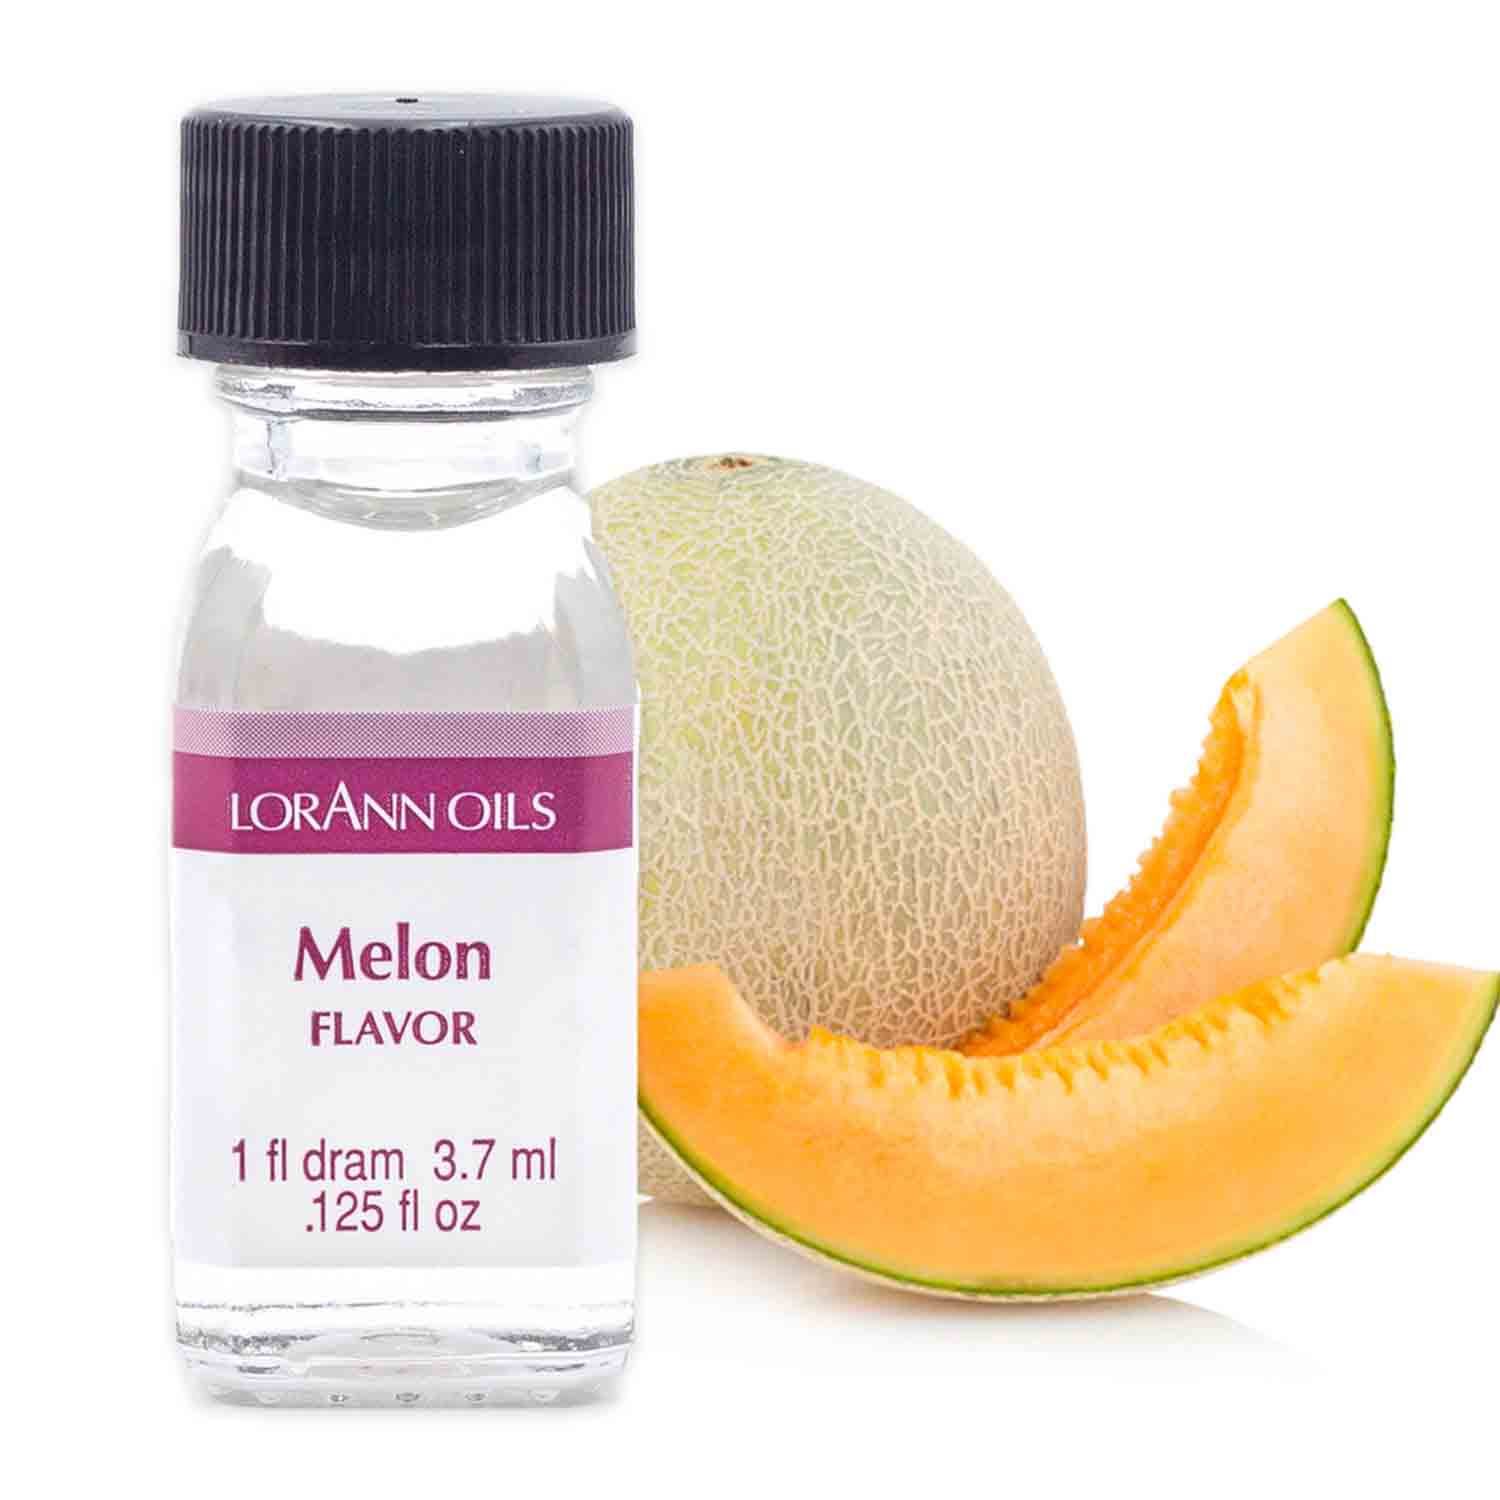 Melon Super-Strength Flavor